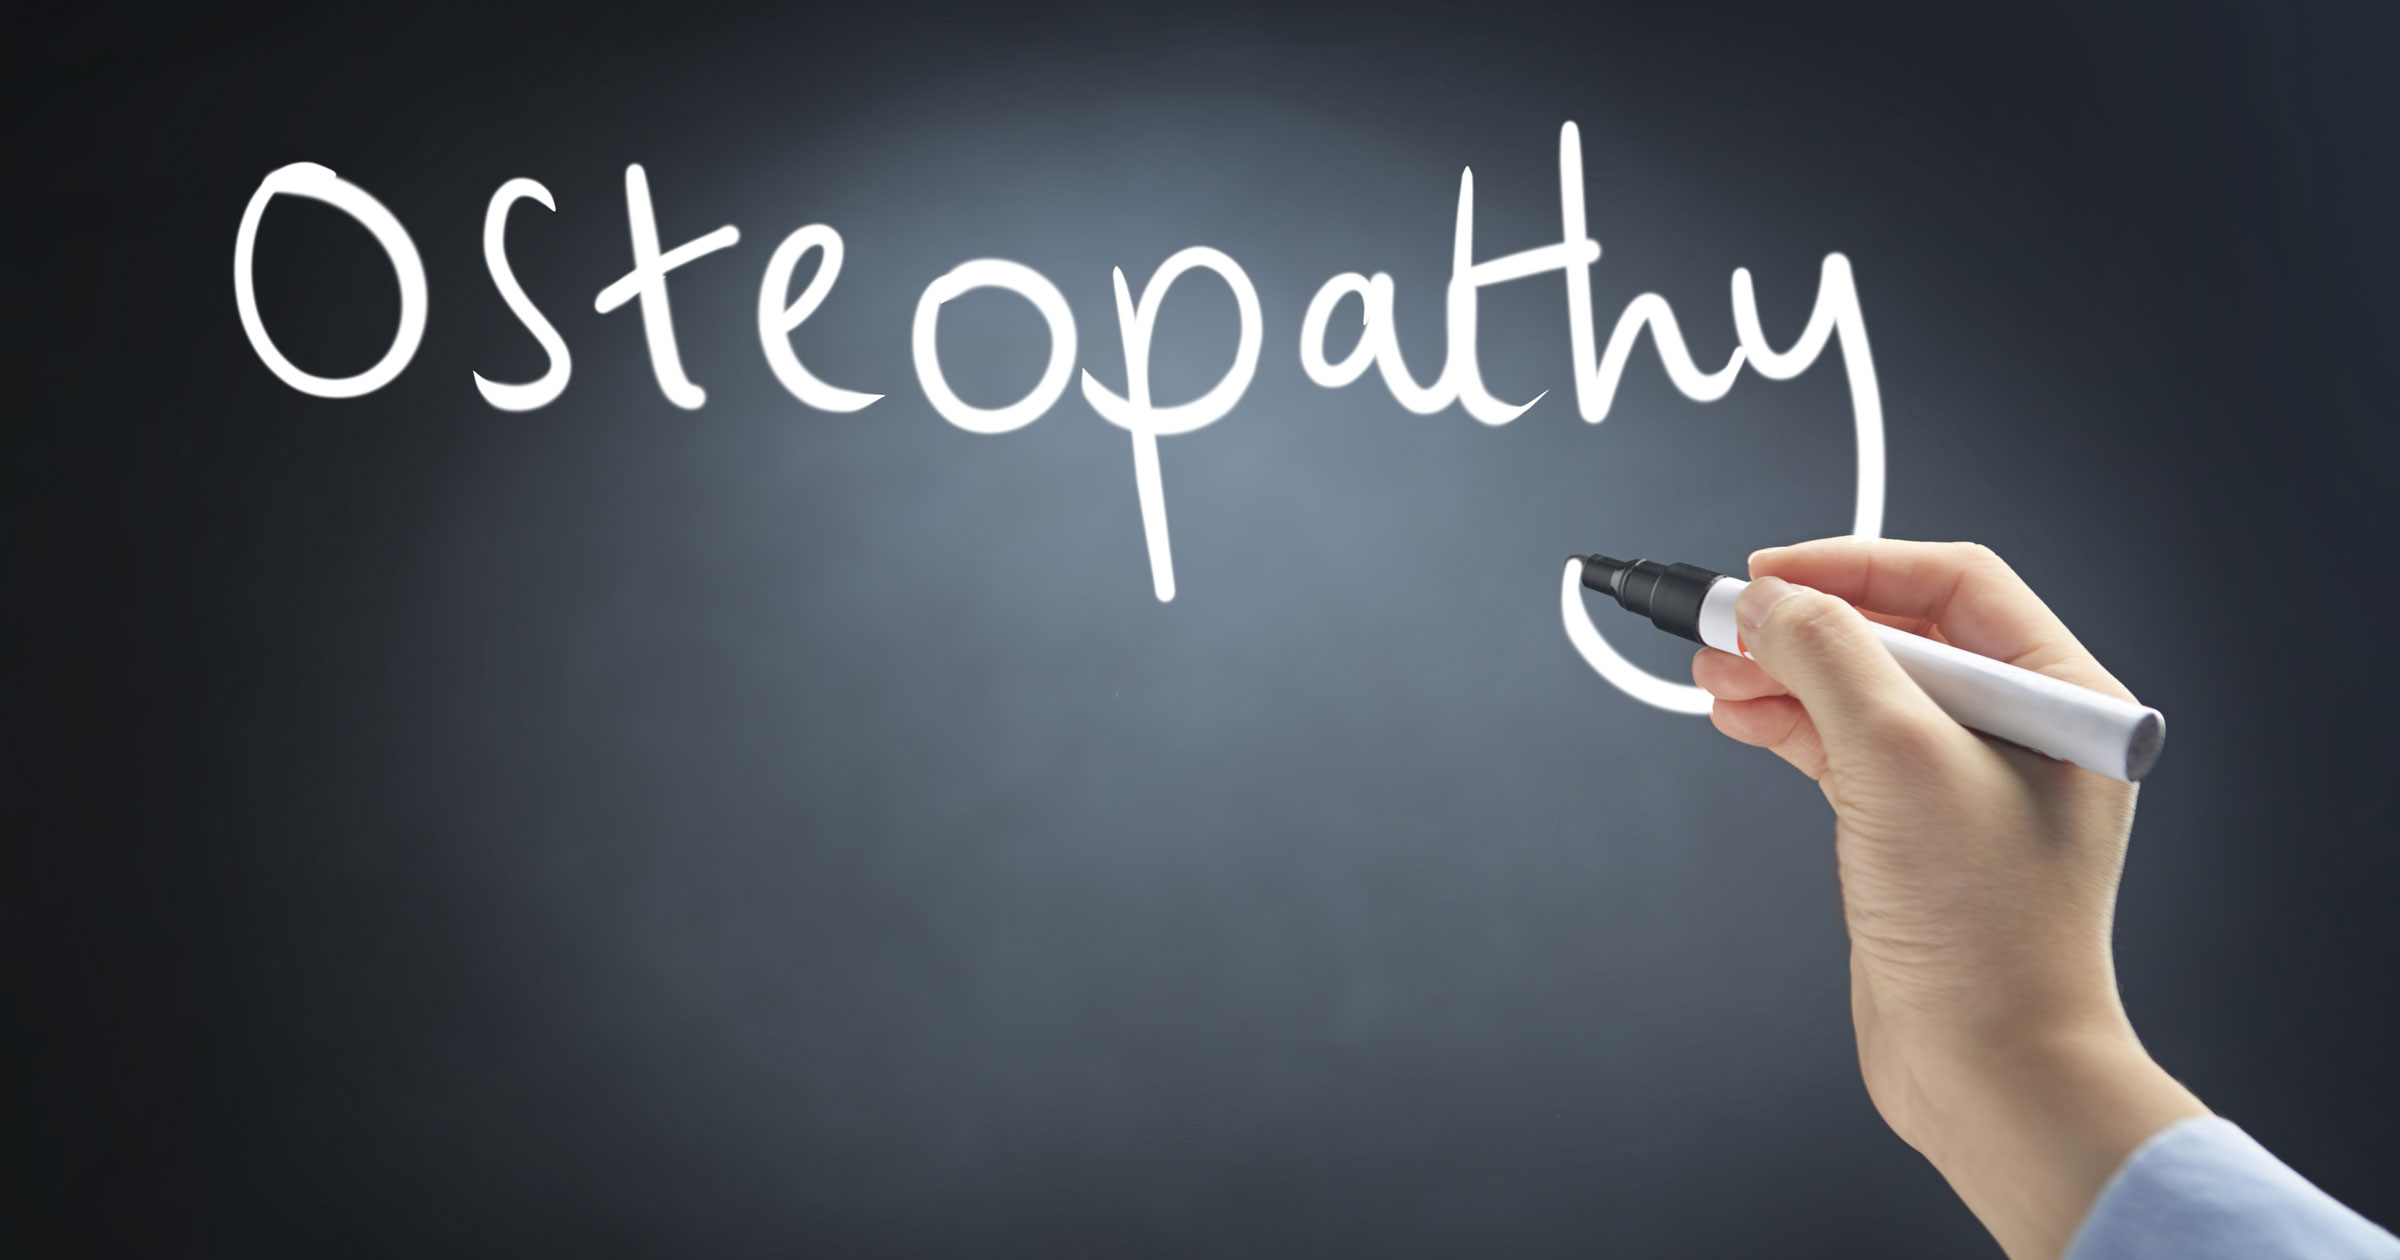 What do osteopaths do?